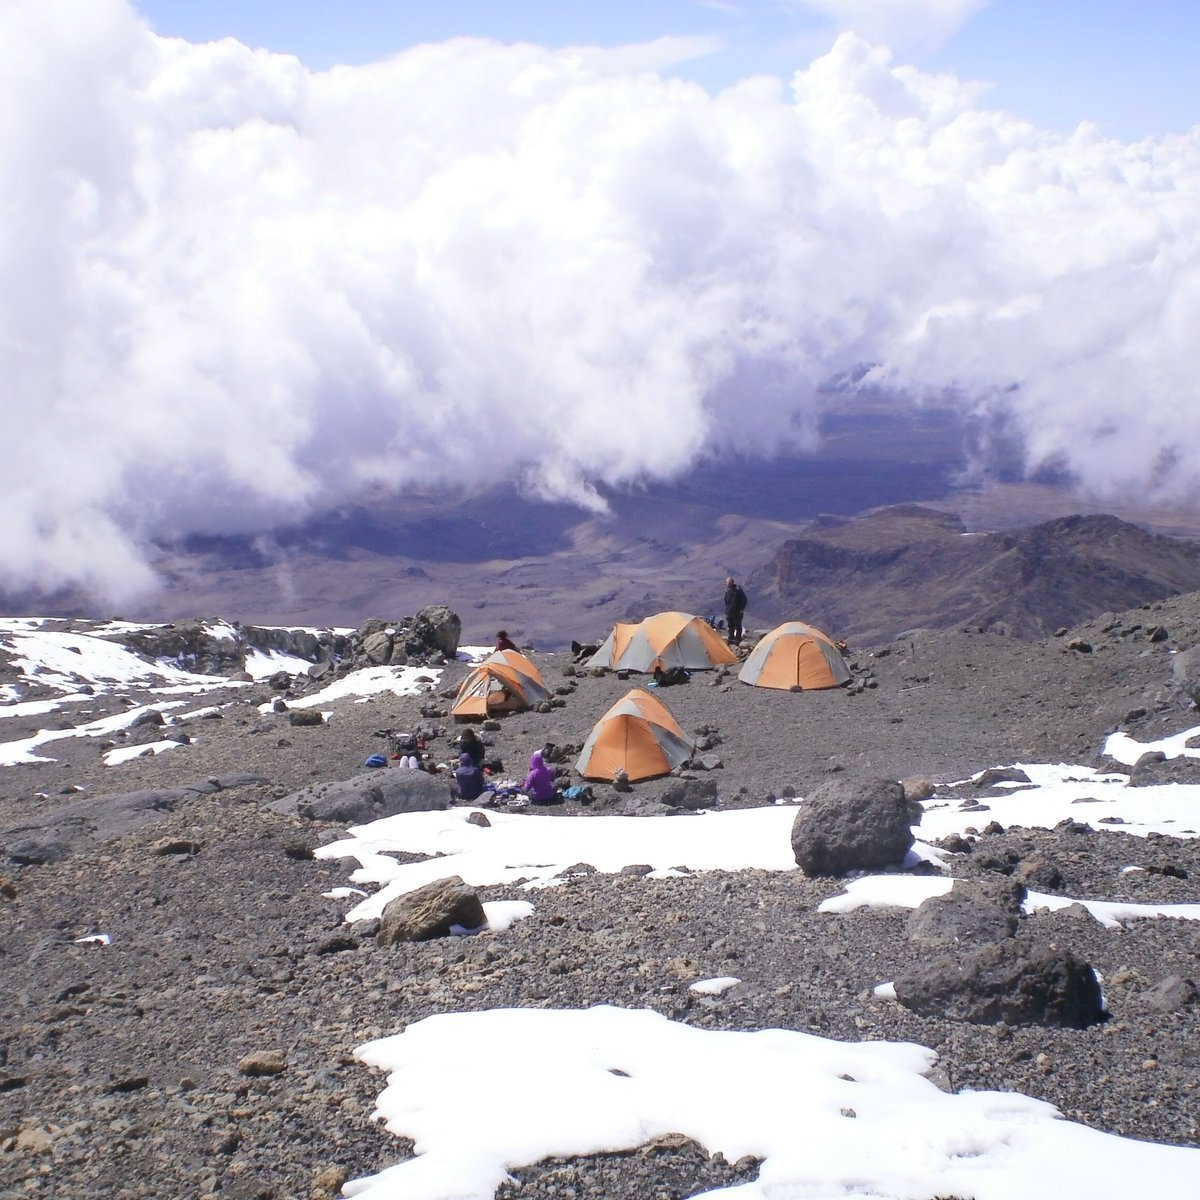 High camp in the mountains of Tanzania